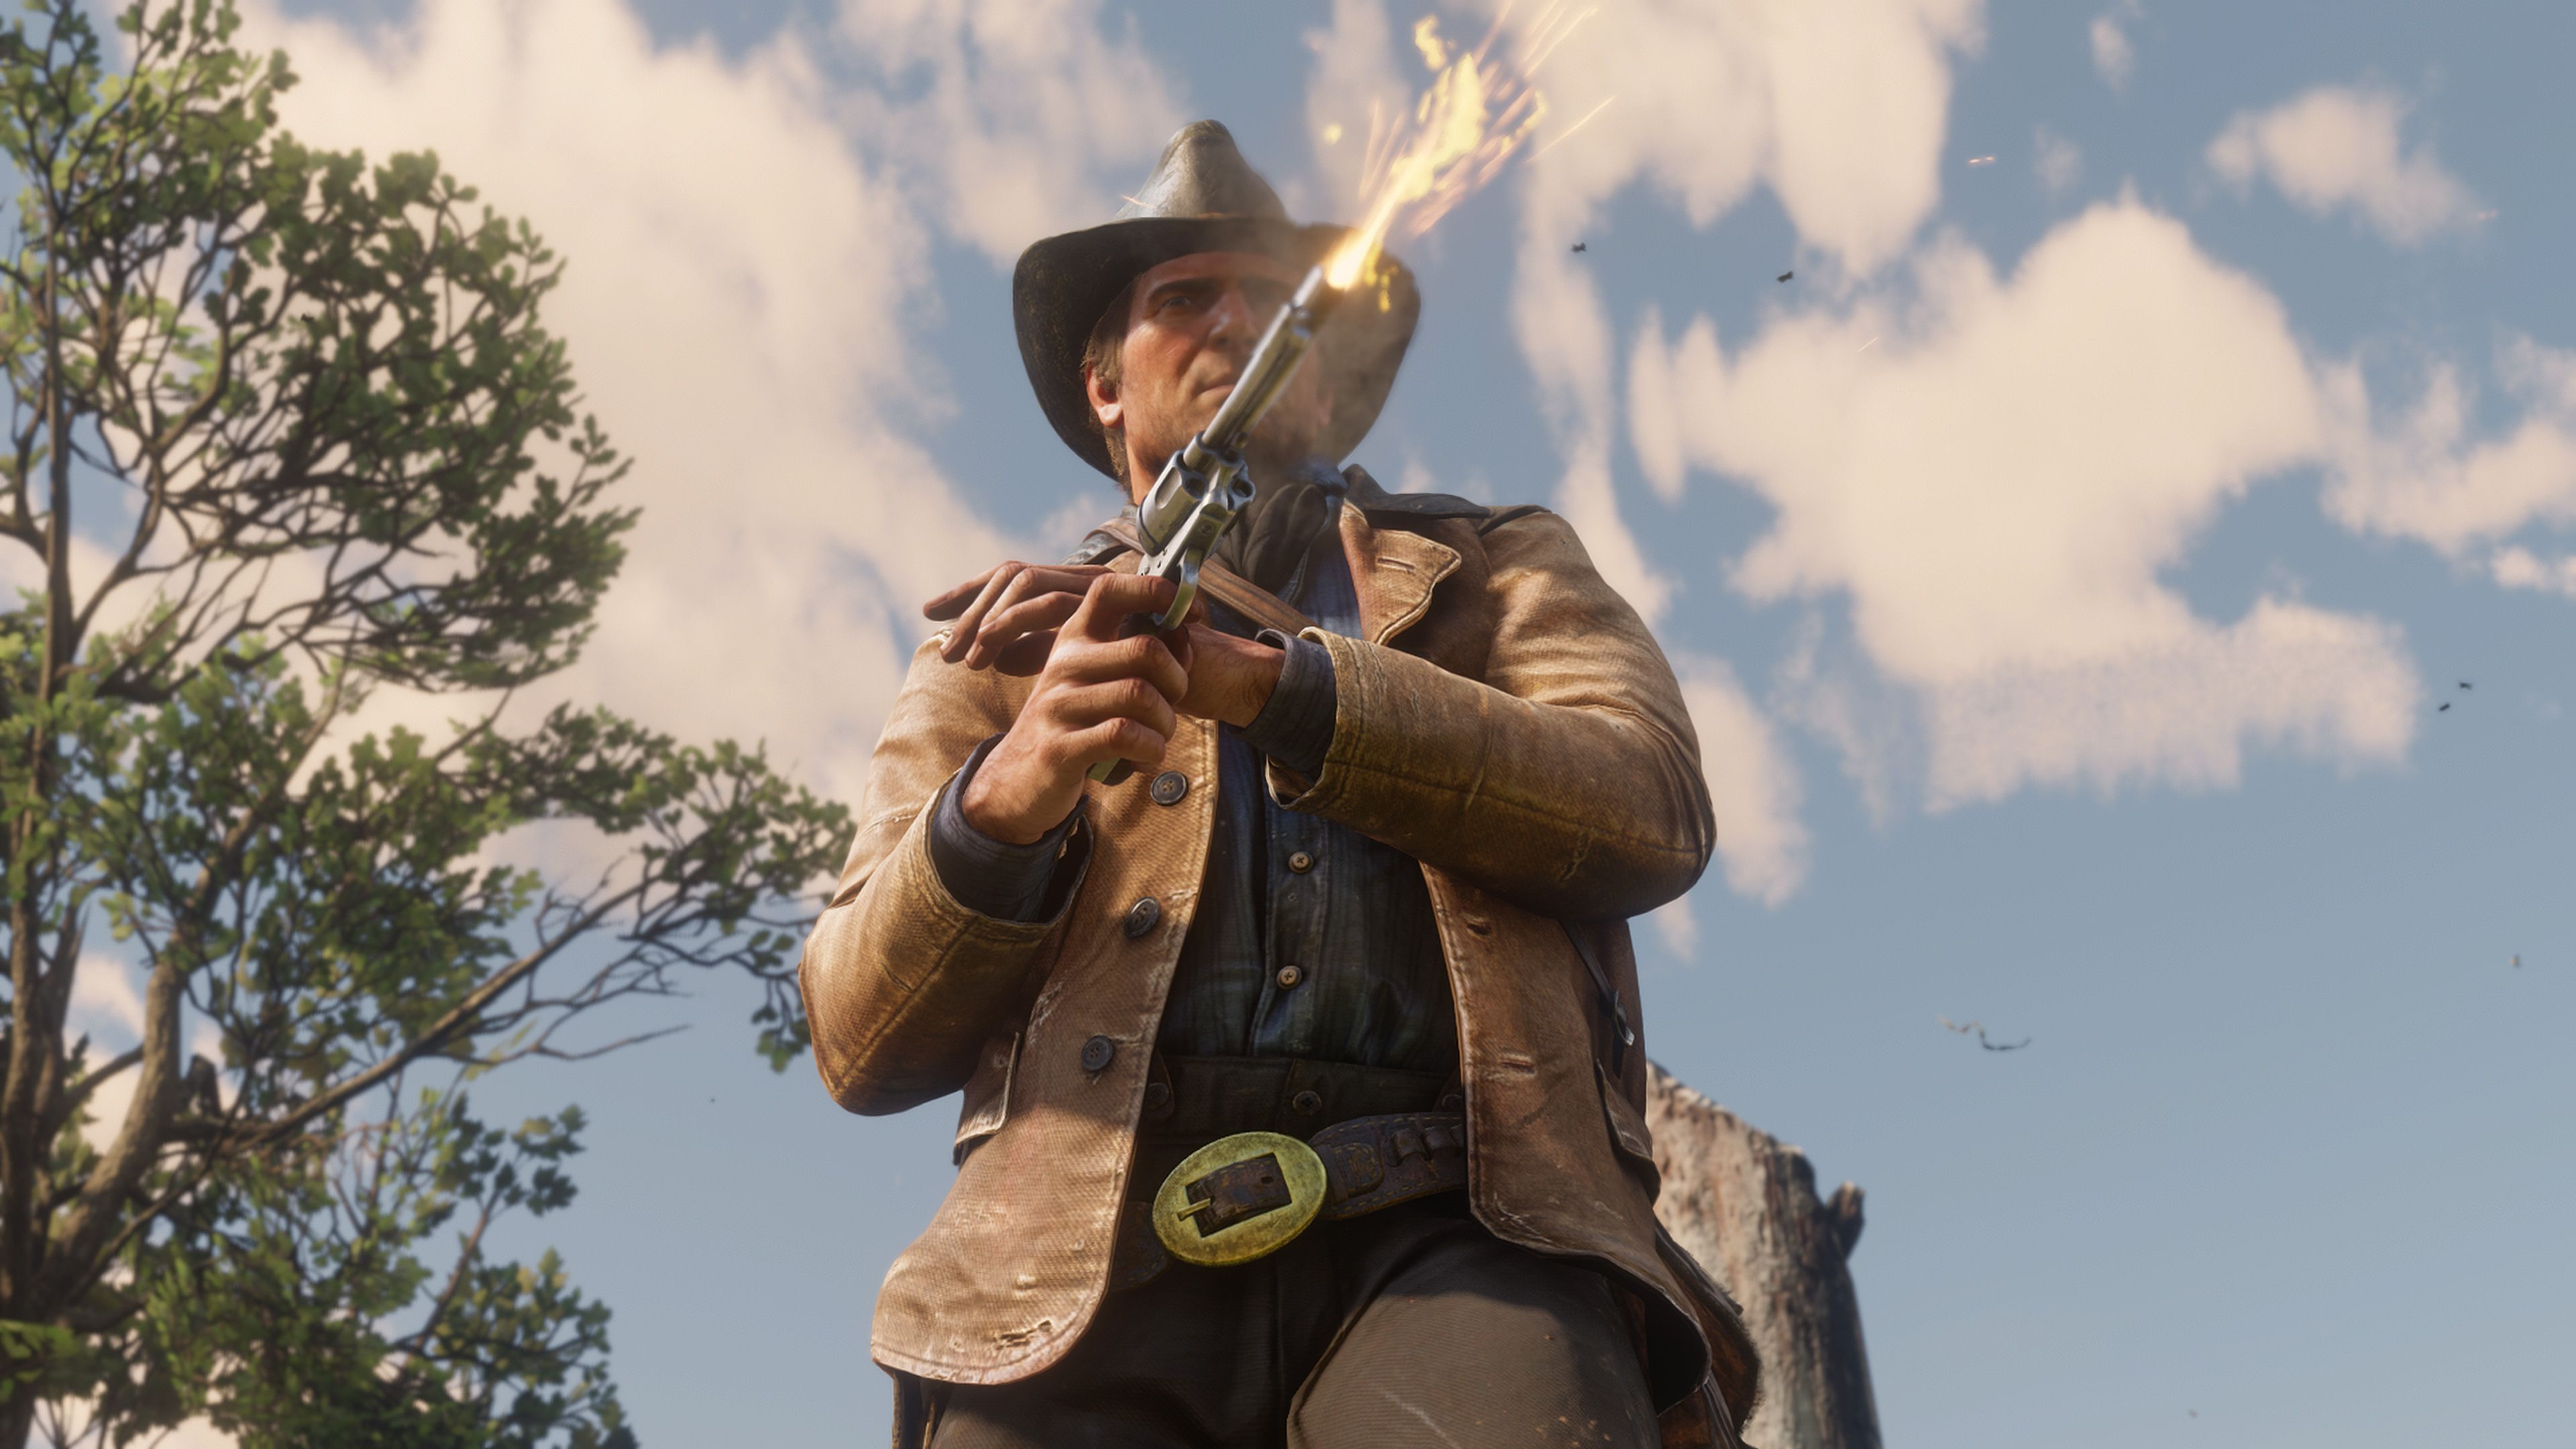 Pin By Ahmad Asadi On Red Dead Redemption Ii Red Dead Redemption